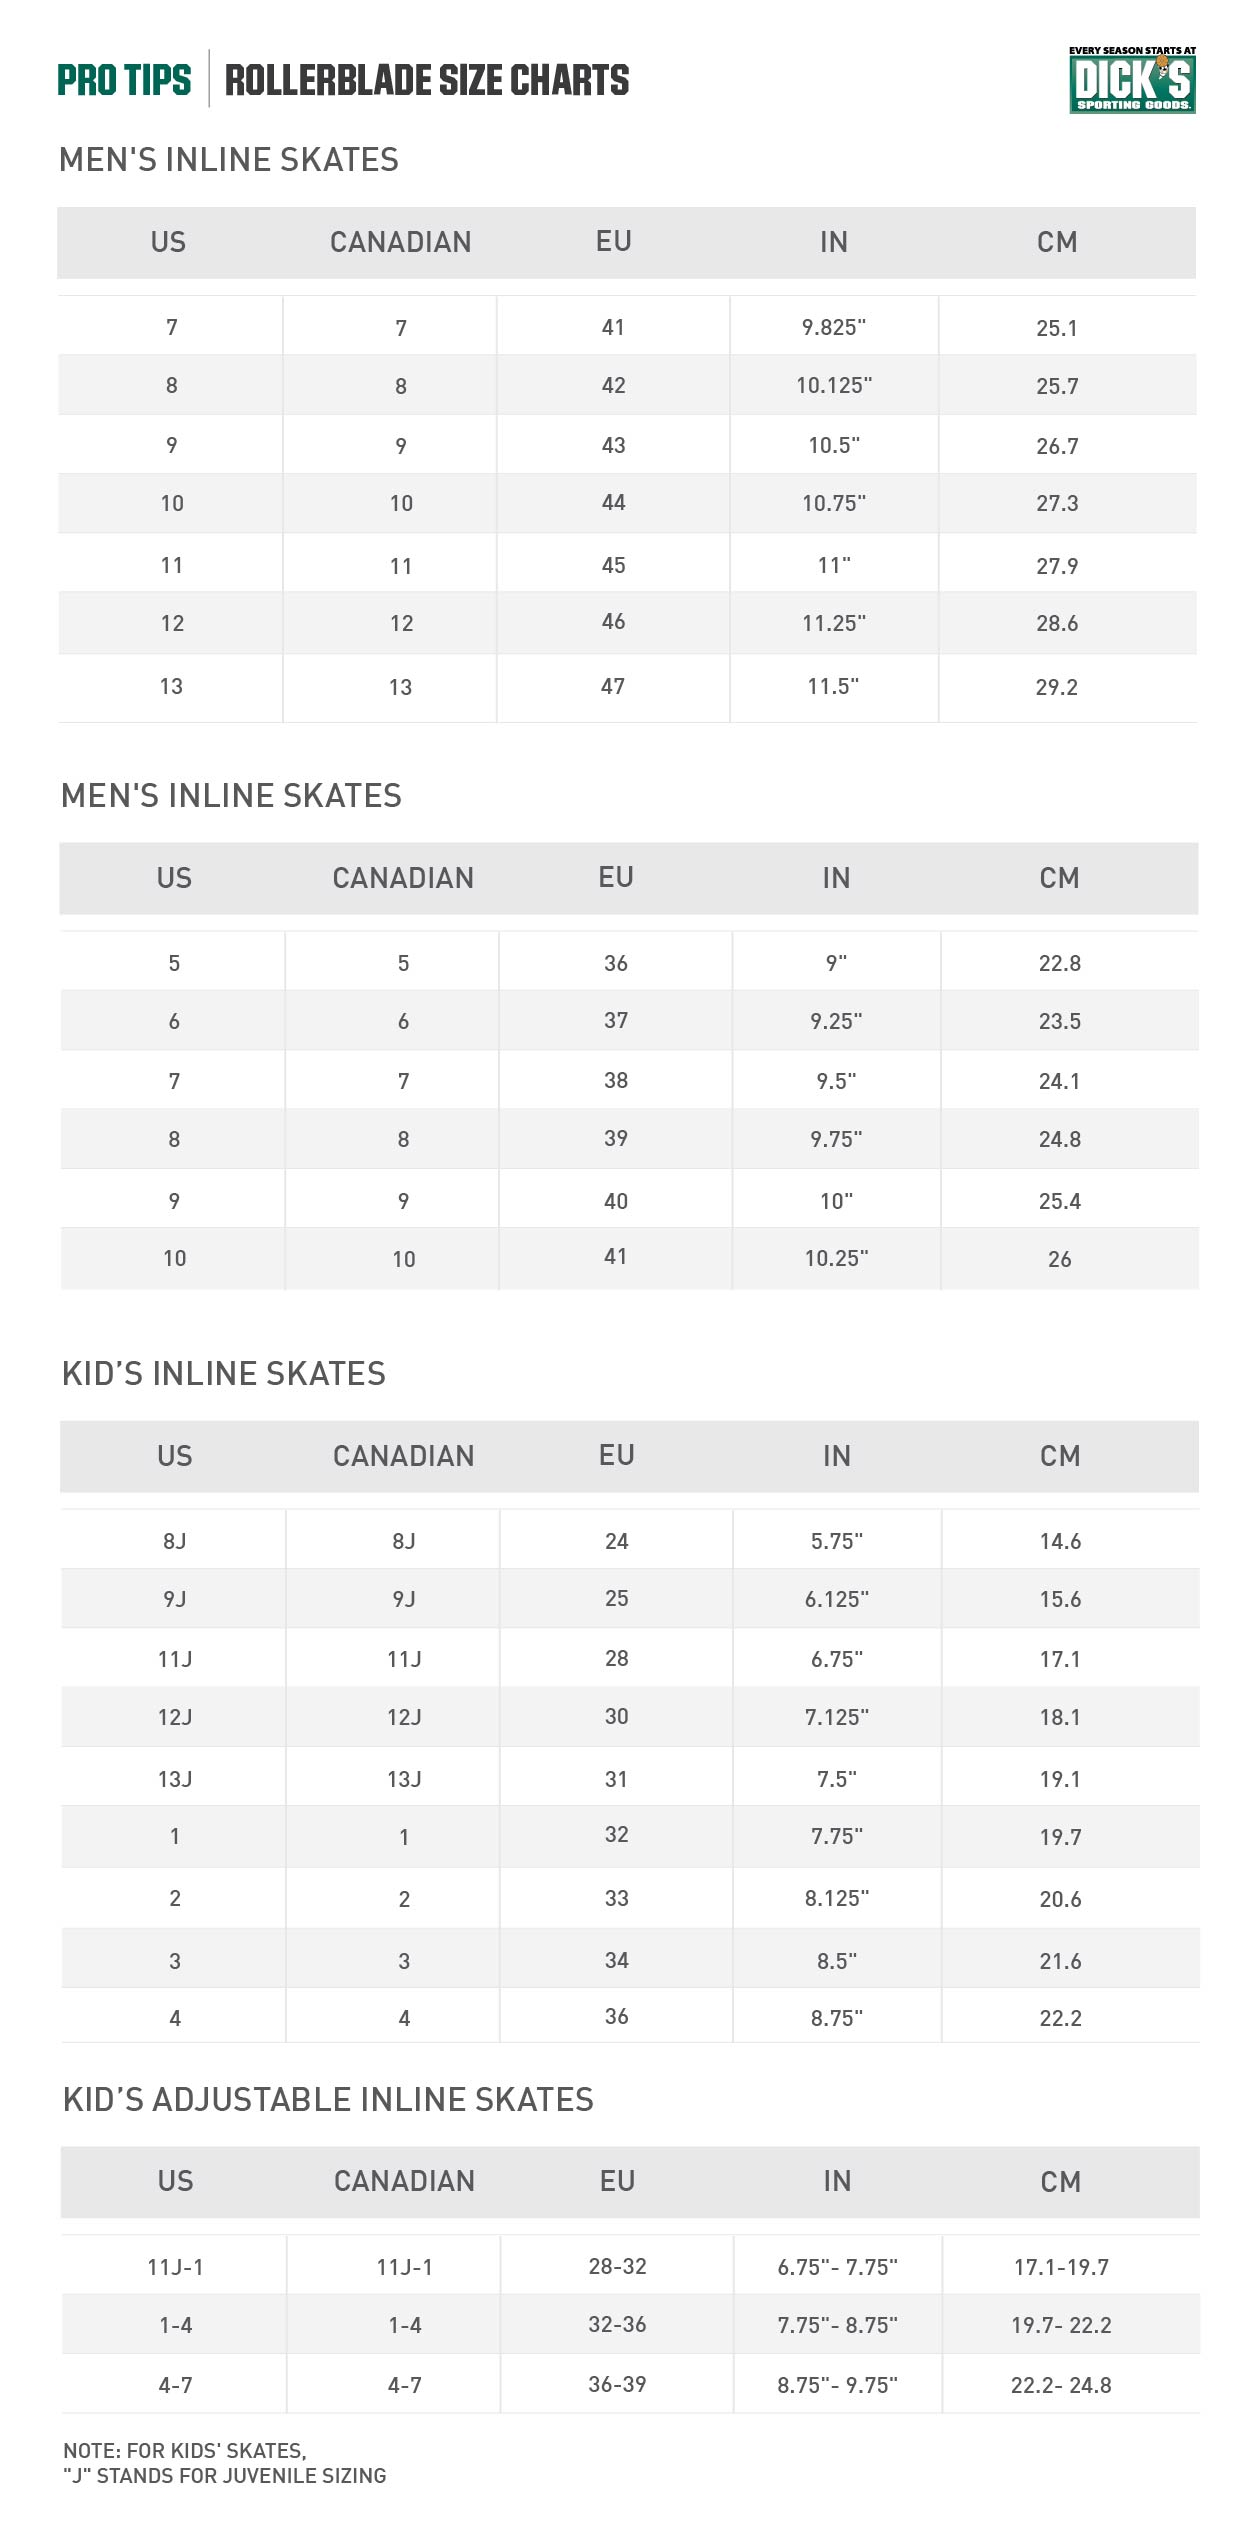 Rollerblade-Sizing-Chart-01